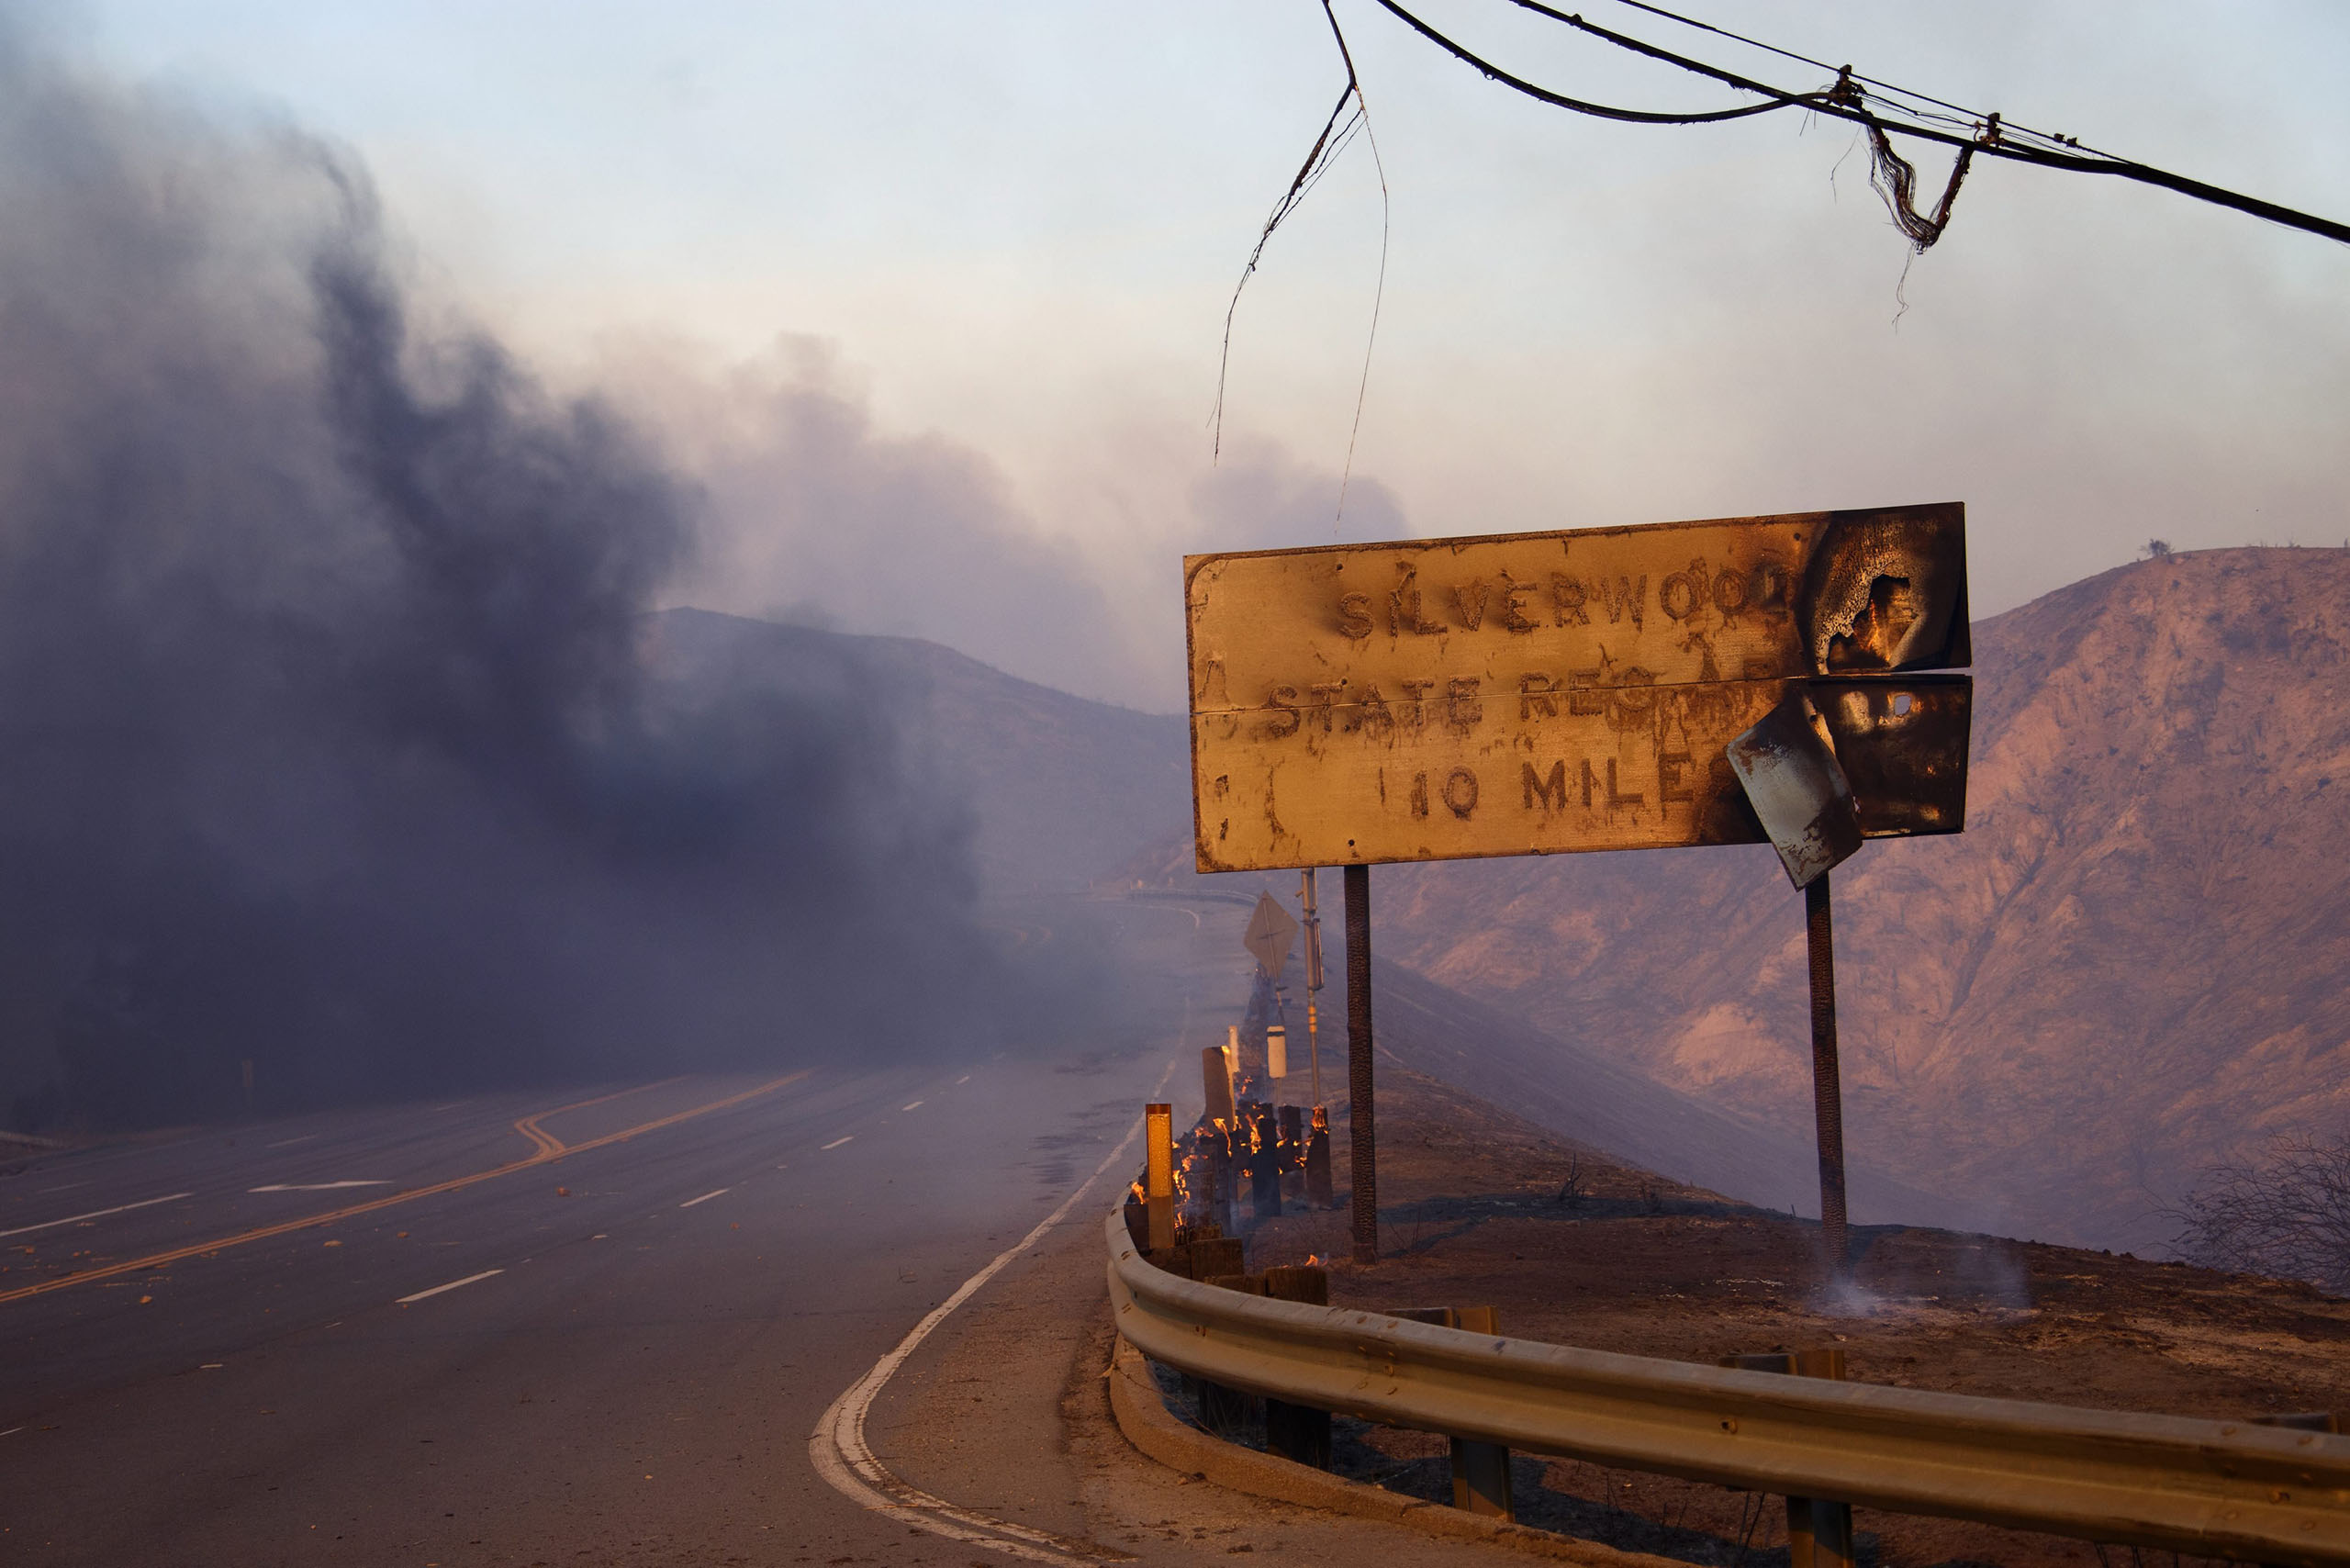 A melted sign shows the damage after a wildfire swept through Cajon Junction, Calif., Aug. 16, 2016.